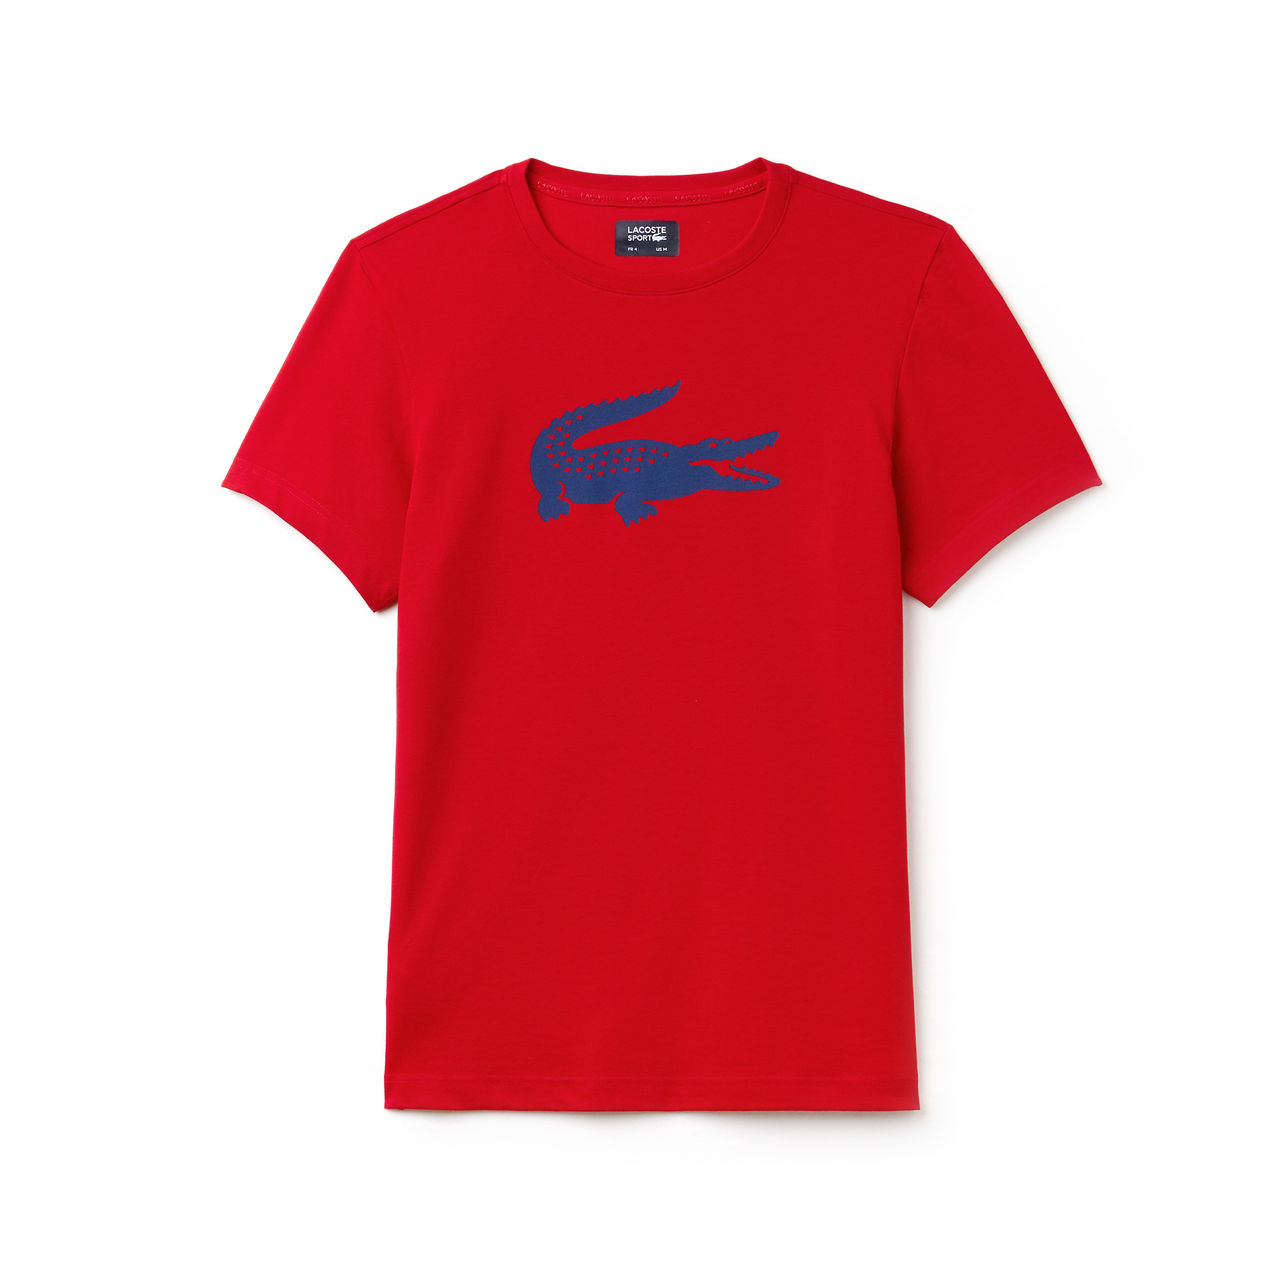 Lacoste t-shirt rood print